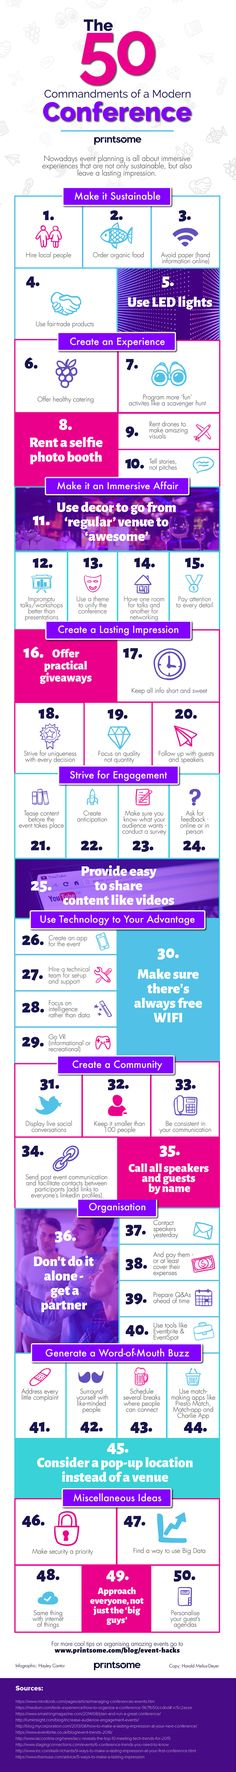 #conferences #eventplanning #infographic #meeting